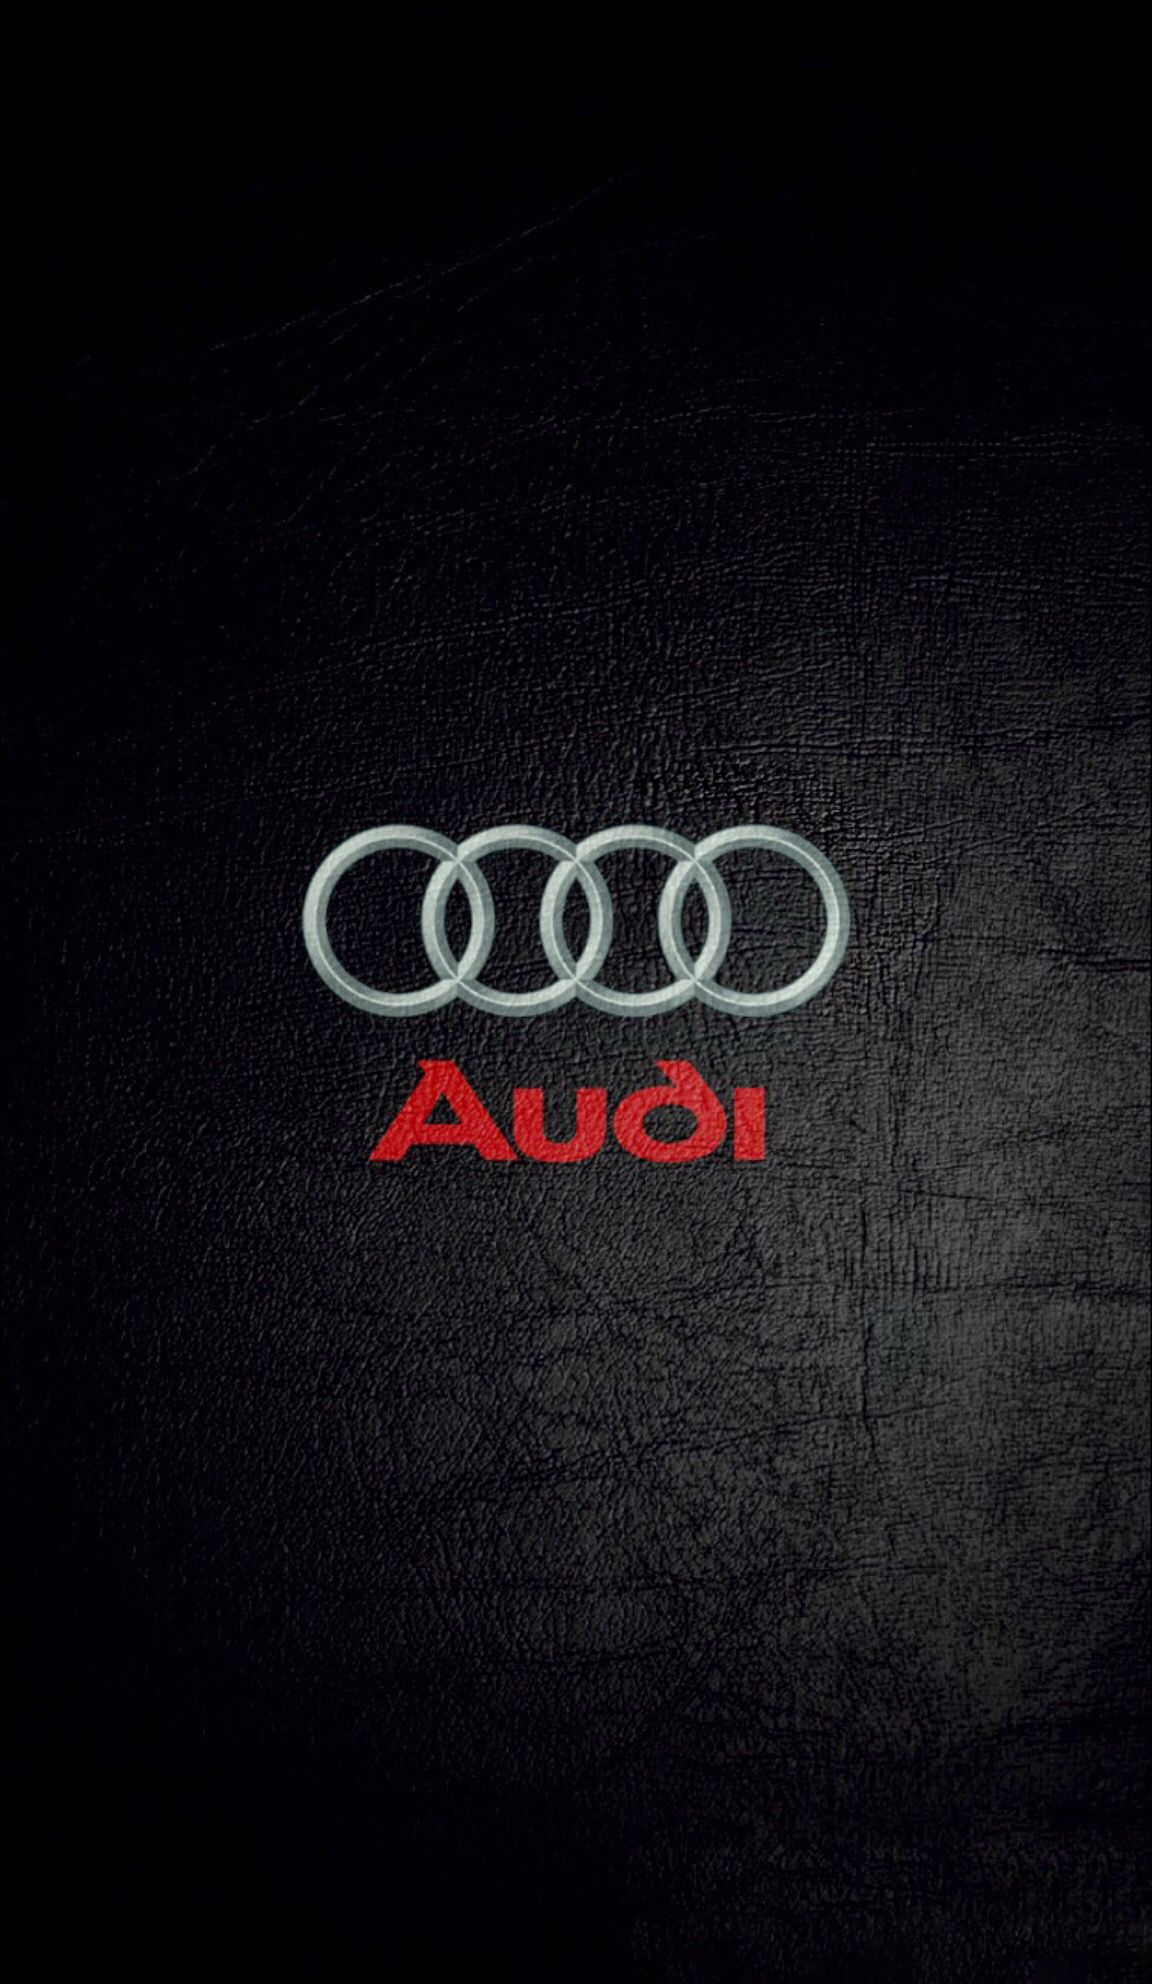 Audi Wallpaper Iphone Hintergrundbilder Iphone Audi Hintergrundbilder